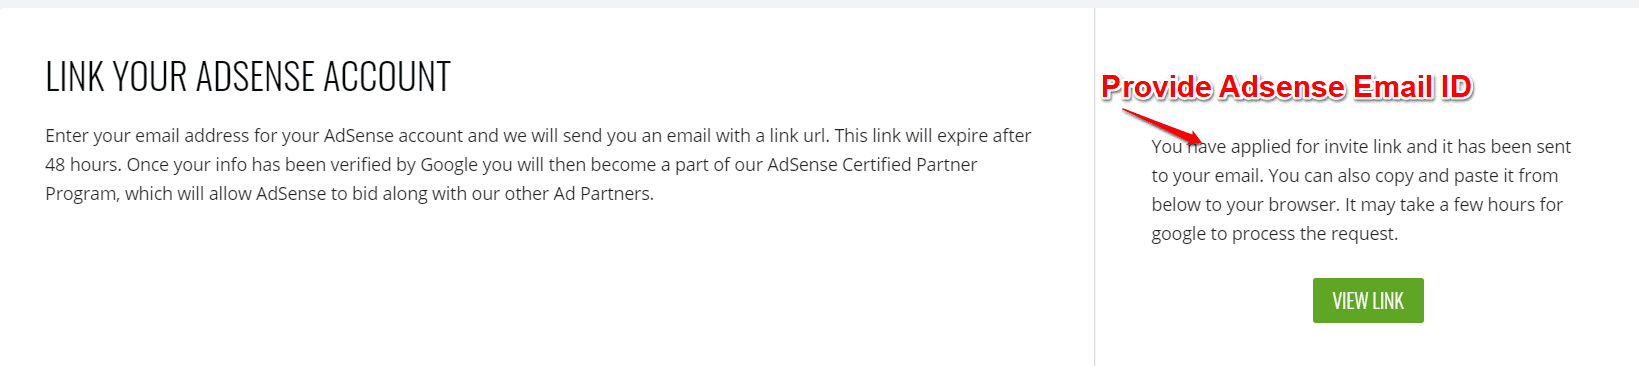 Link Adsense account with Ezoic